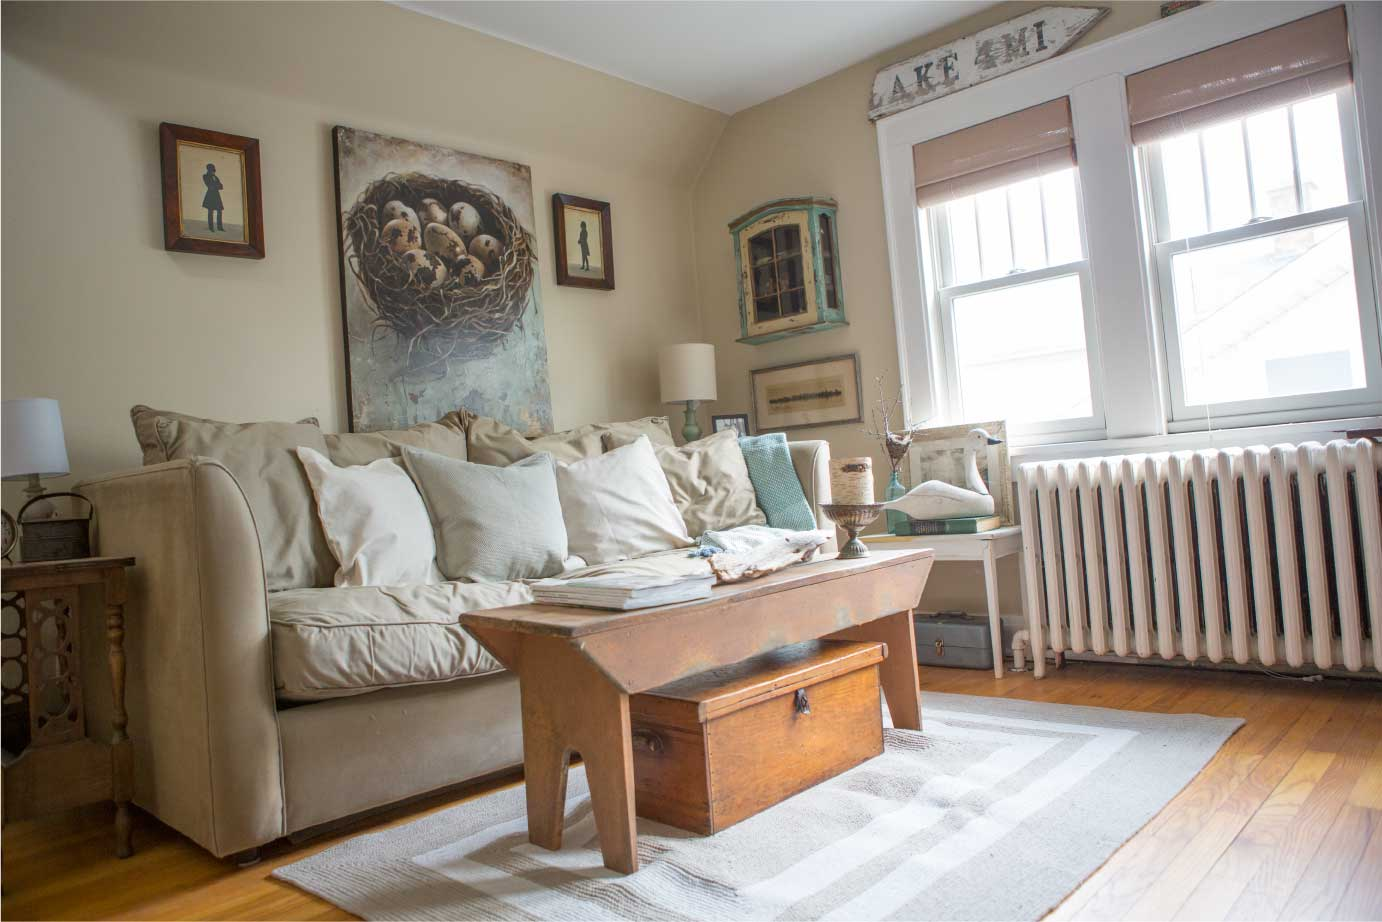 Lots of wood, neutral colors, and nature themed artwork make this room feel inviting.